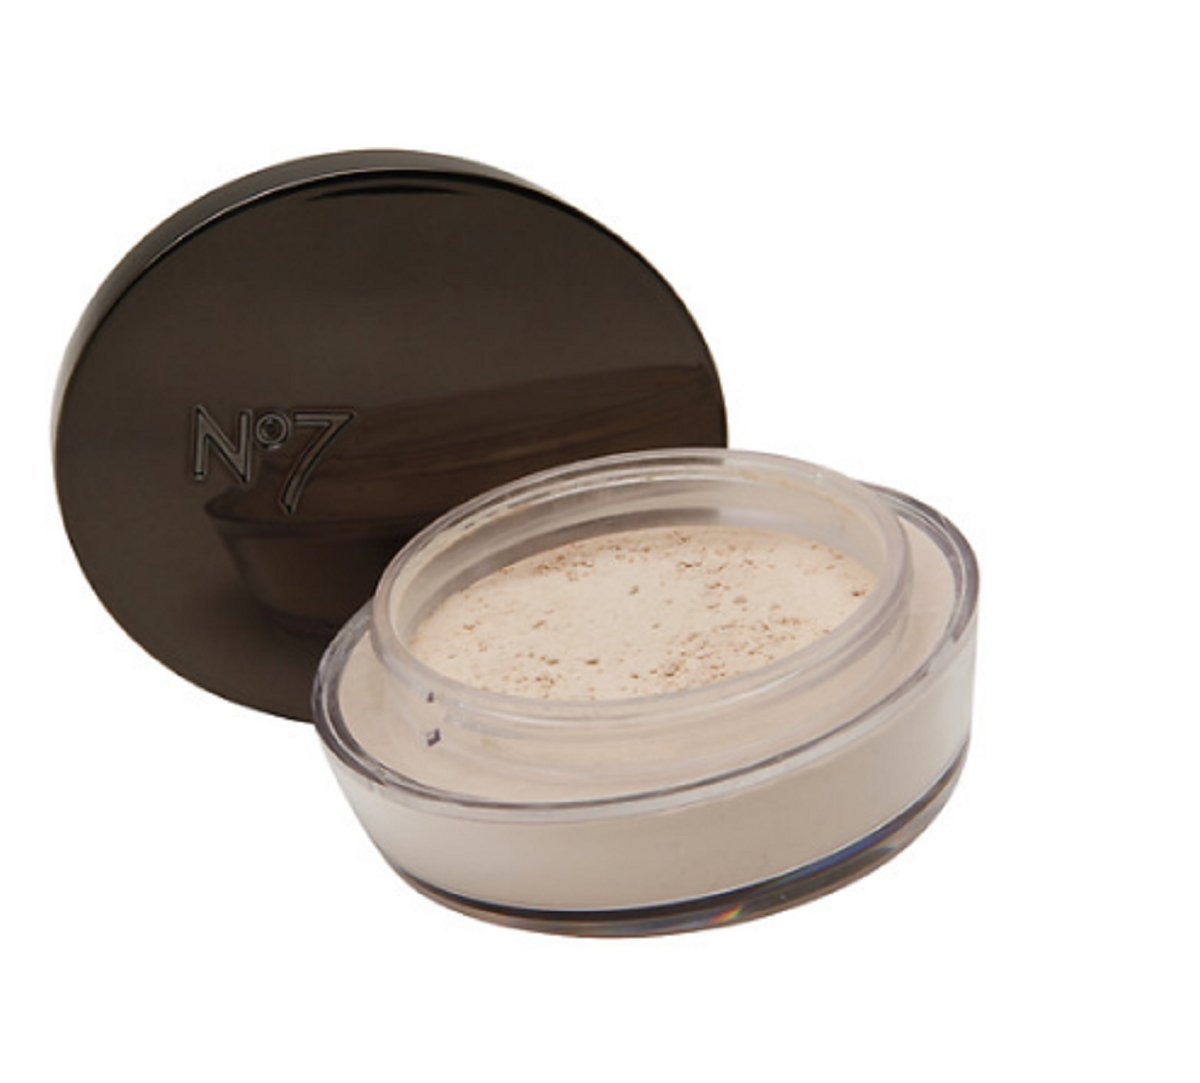 BOOTS No7 Perfect Light Loose Powder Translucent